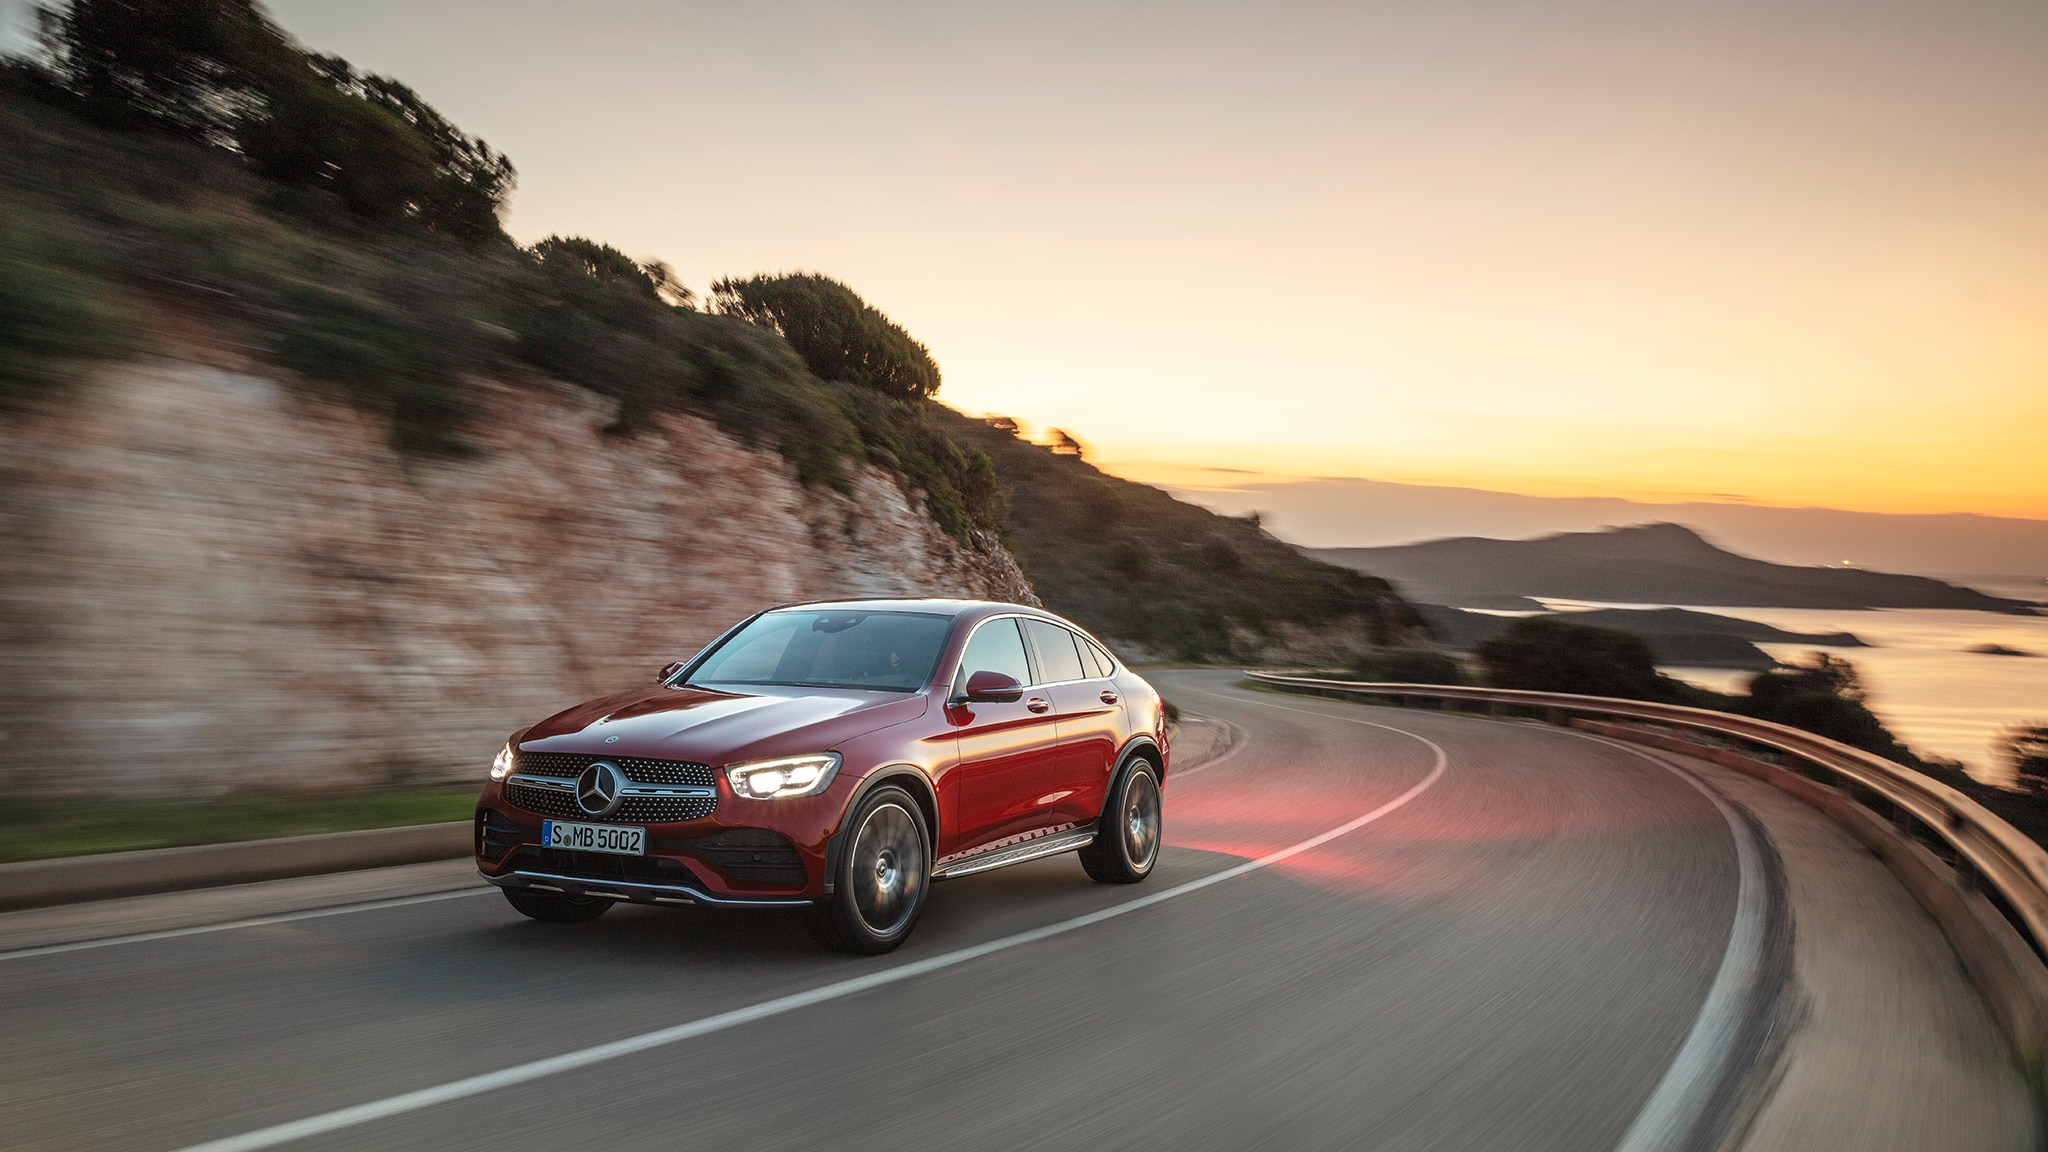 2020 Mercedes-Benz GLC Coupe: Digital Assistant And More